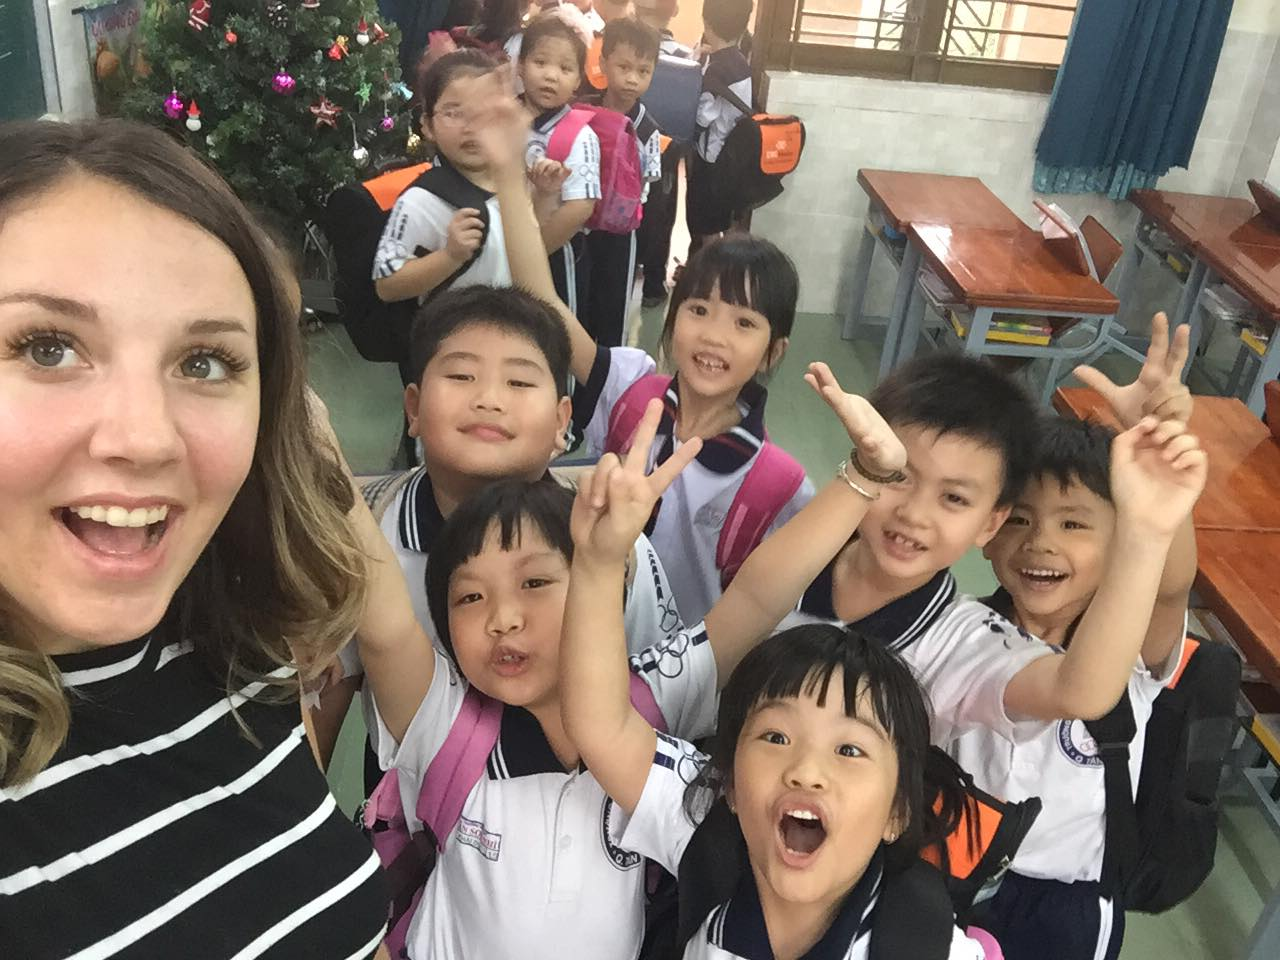 I Have Student Loans - How Can I Teach English Abroad?